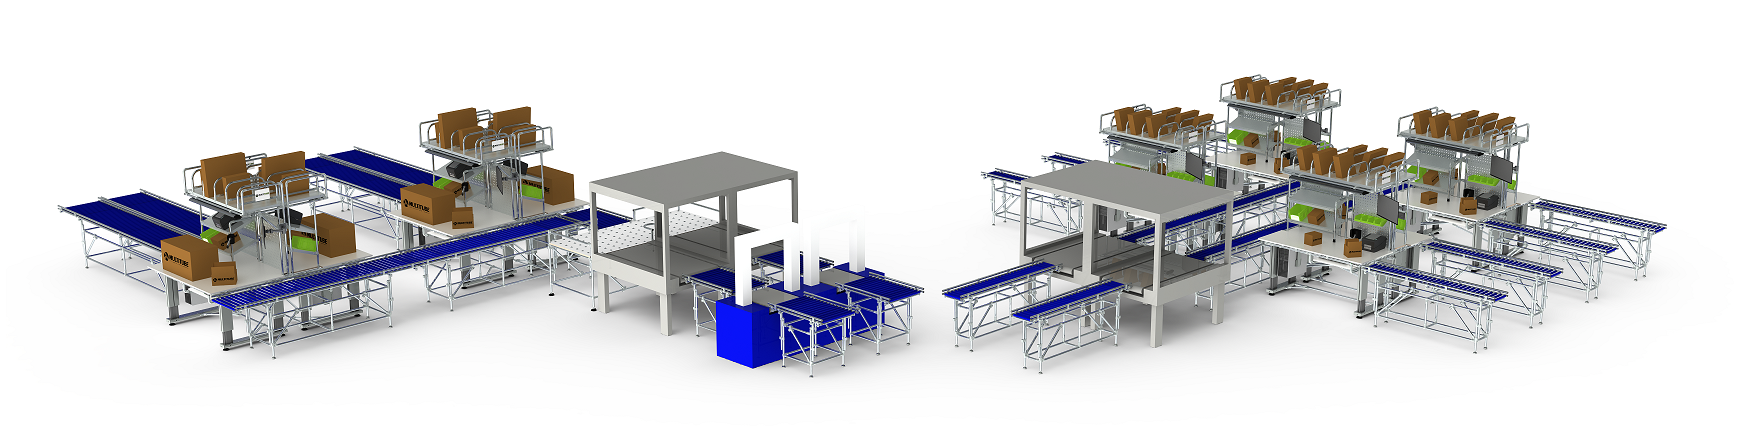 Multitube packaging line